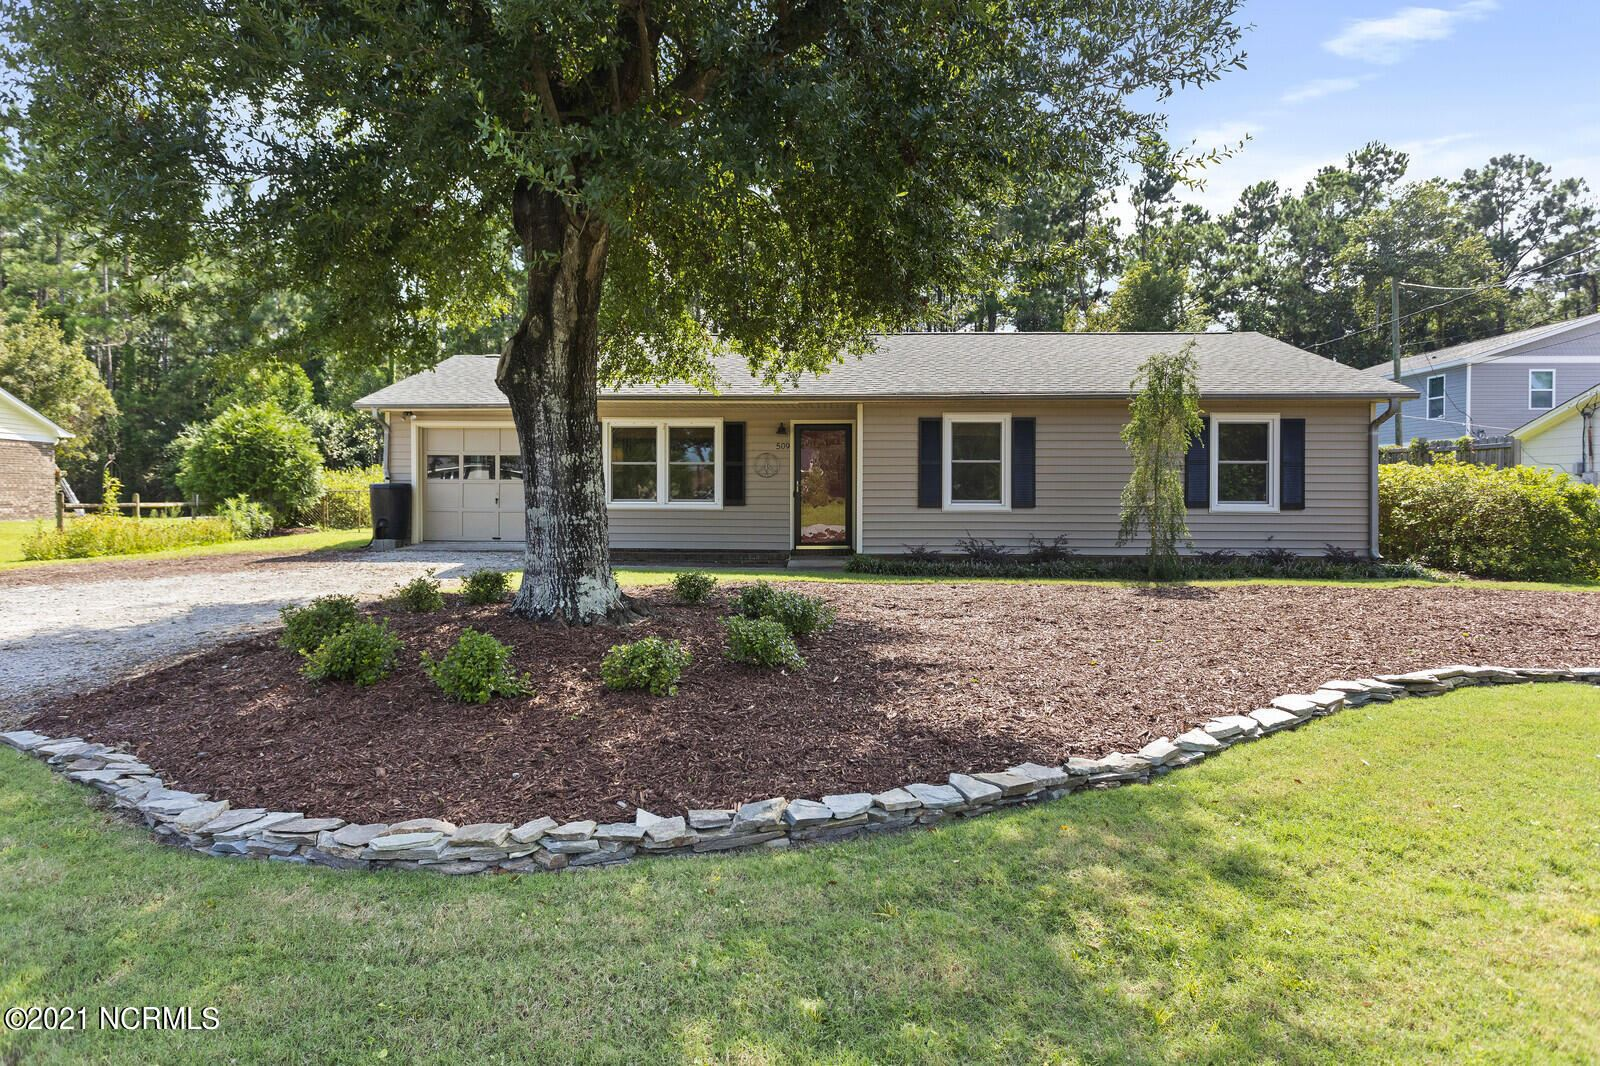 Photo of 509 Plymouth Drive, Wilmington, NC 28405 (MLS # 100288817)